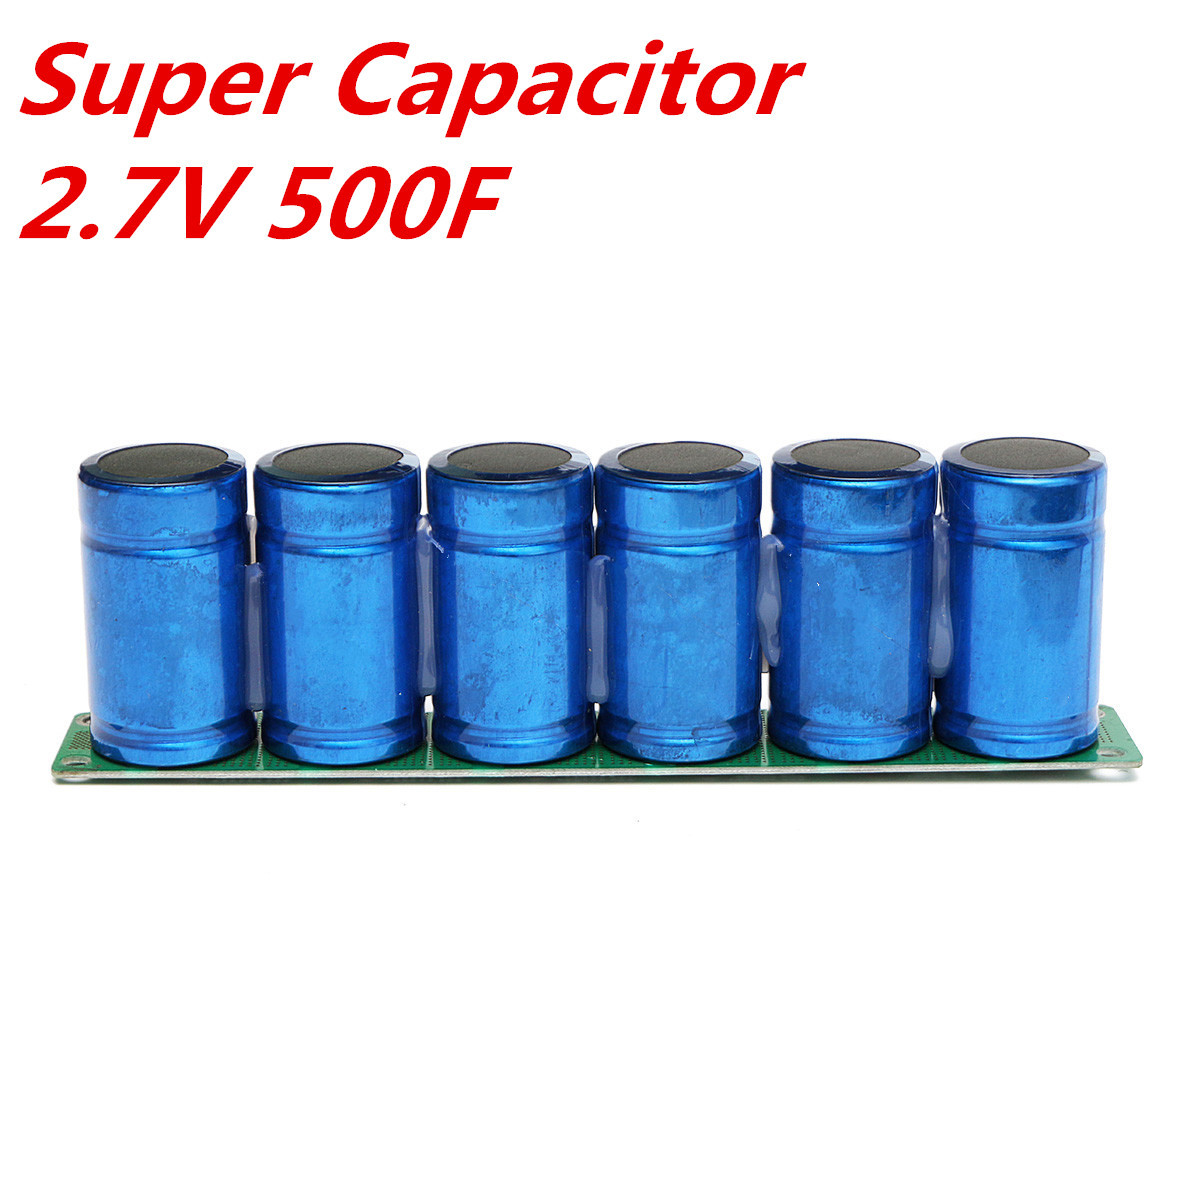 Farad Capacitor 2.7V 500F Super Capacitor With Protection Board